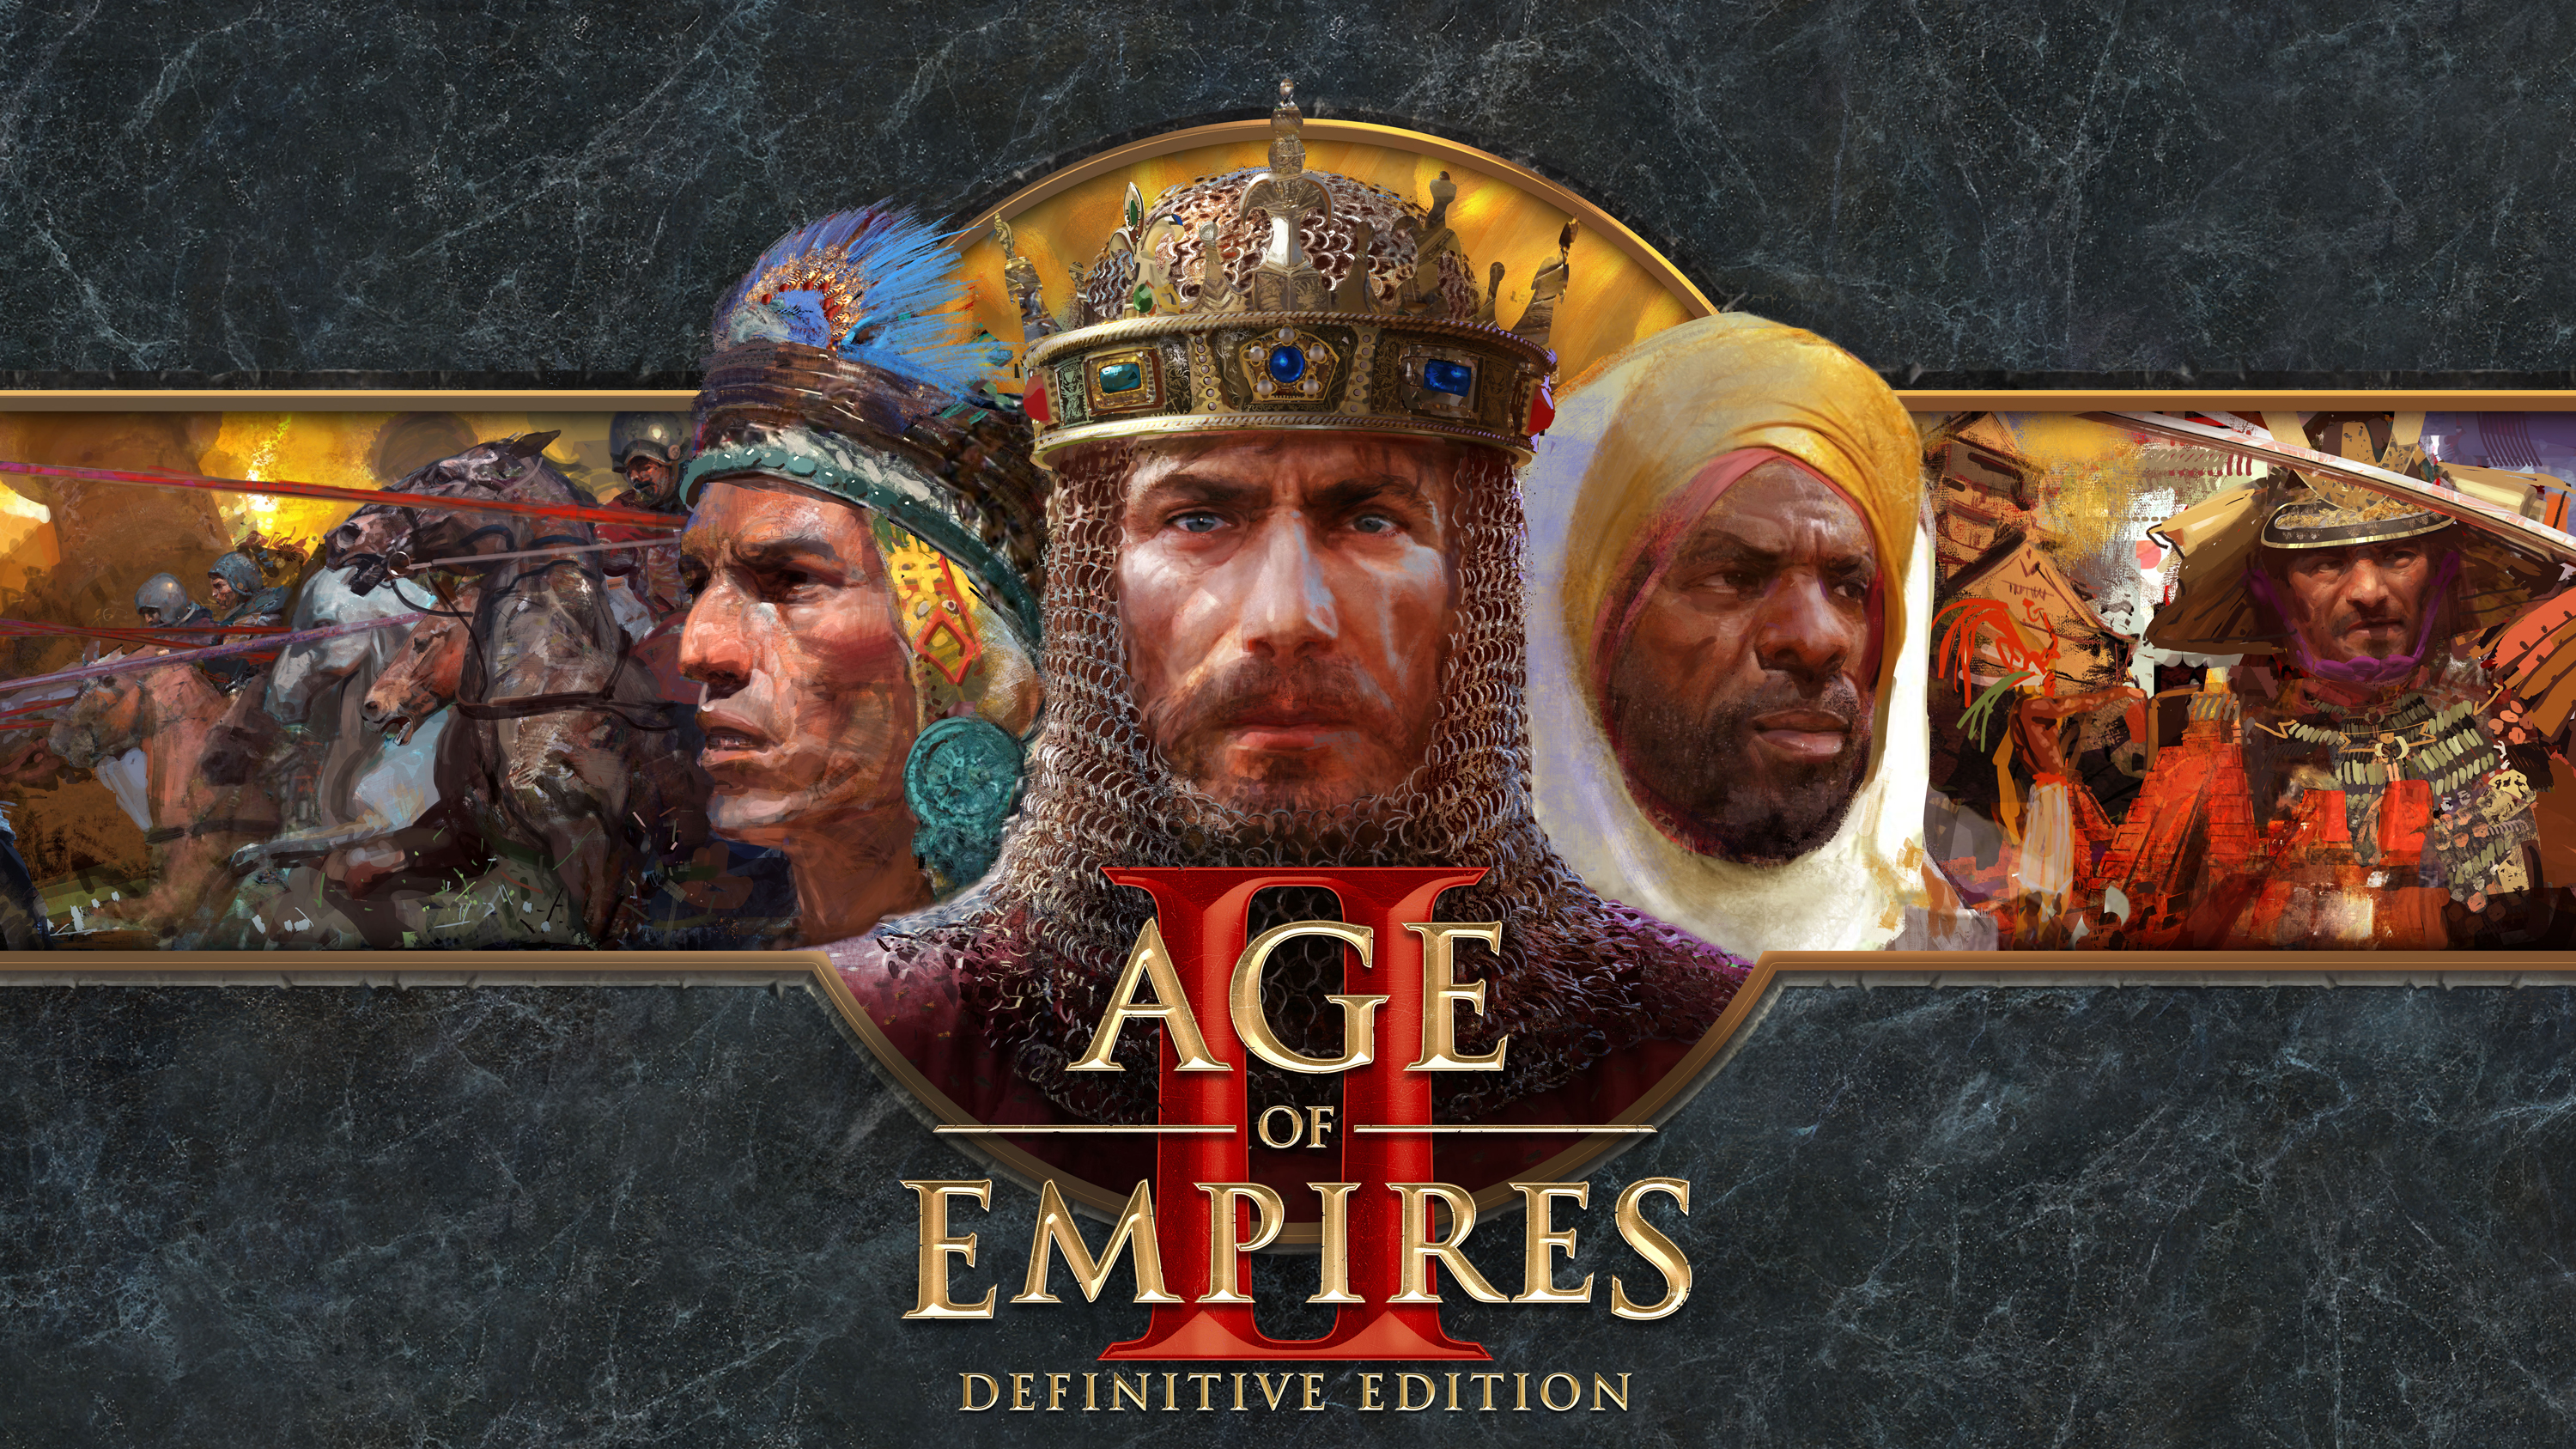 Age of Empires 2: Definitive Edition will offer 20 years of content